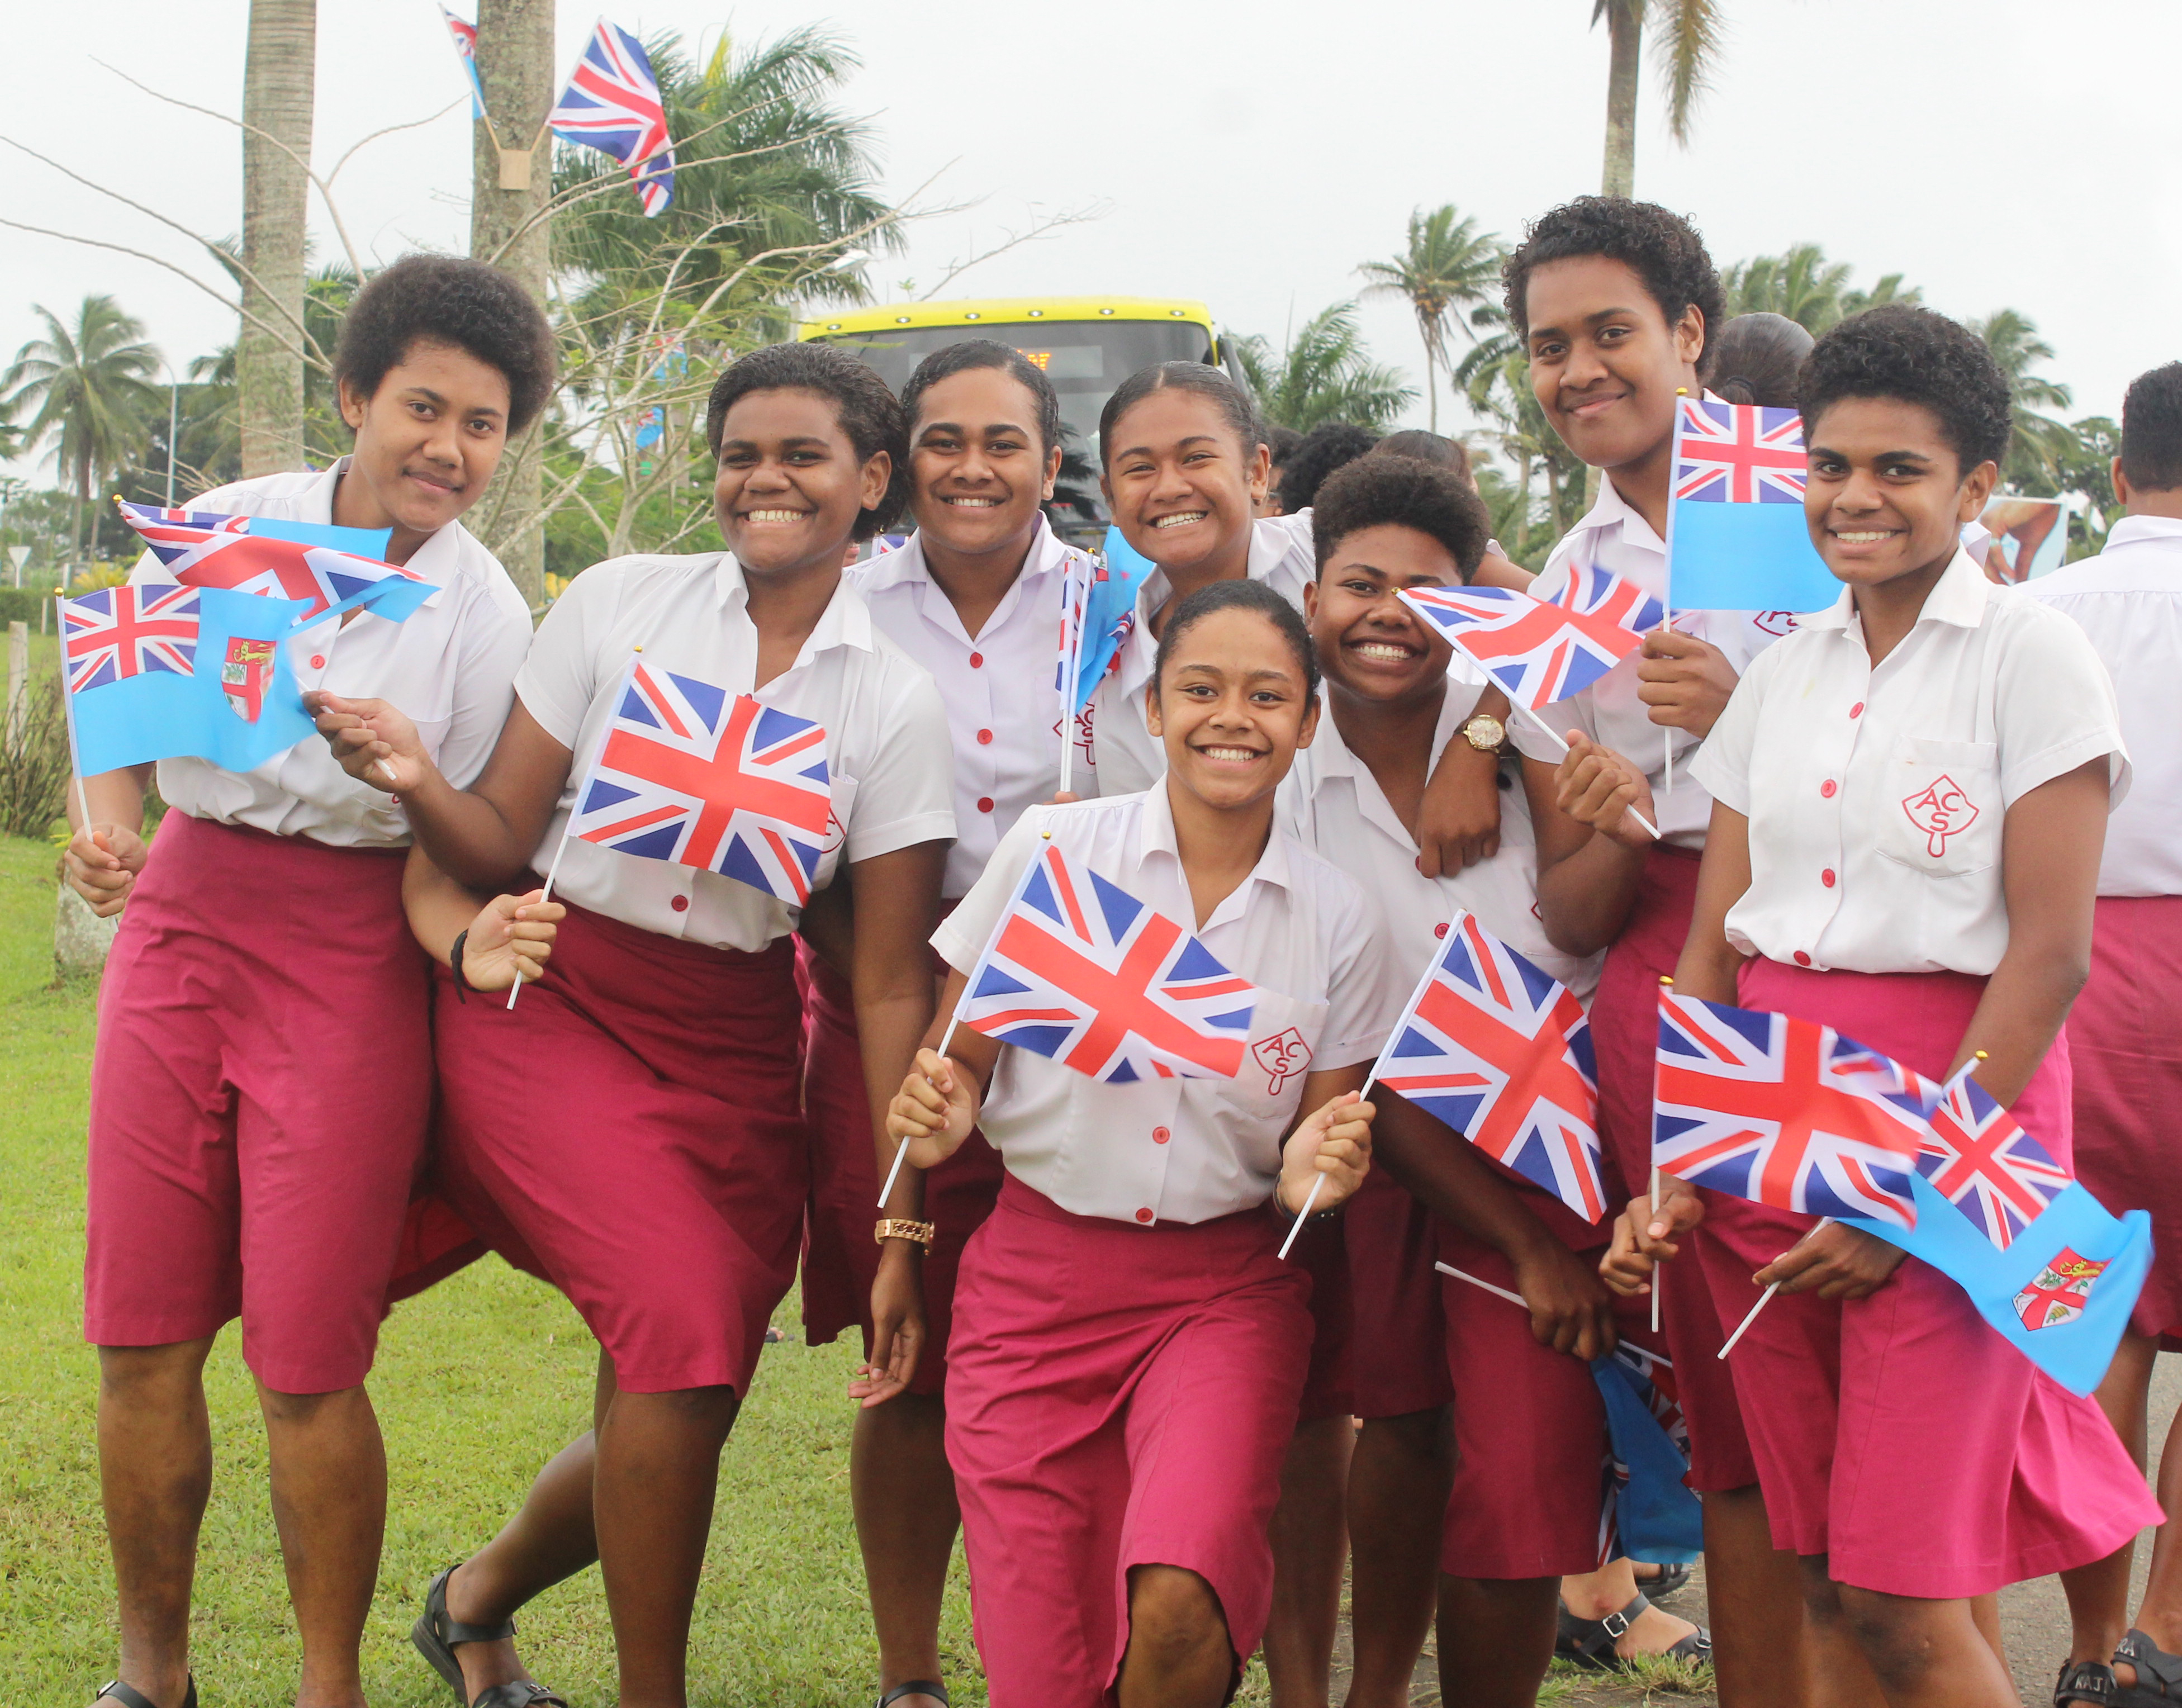 Students of Adi Cakobau School in Nausori anticipating the arrival of the Duke and Duchess of Sussex, Prince Harry and Meghan at the Nausori Airport on October 23,2018. Photo:Simione Haravanua.